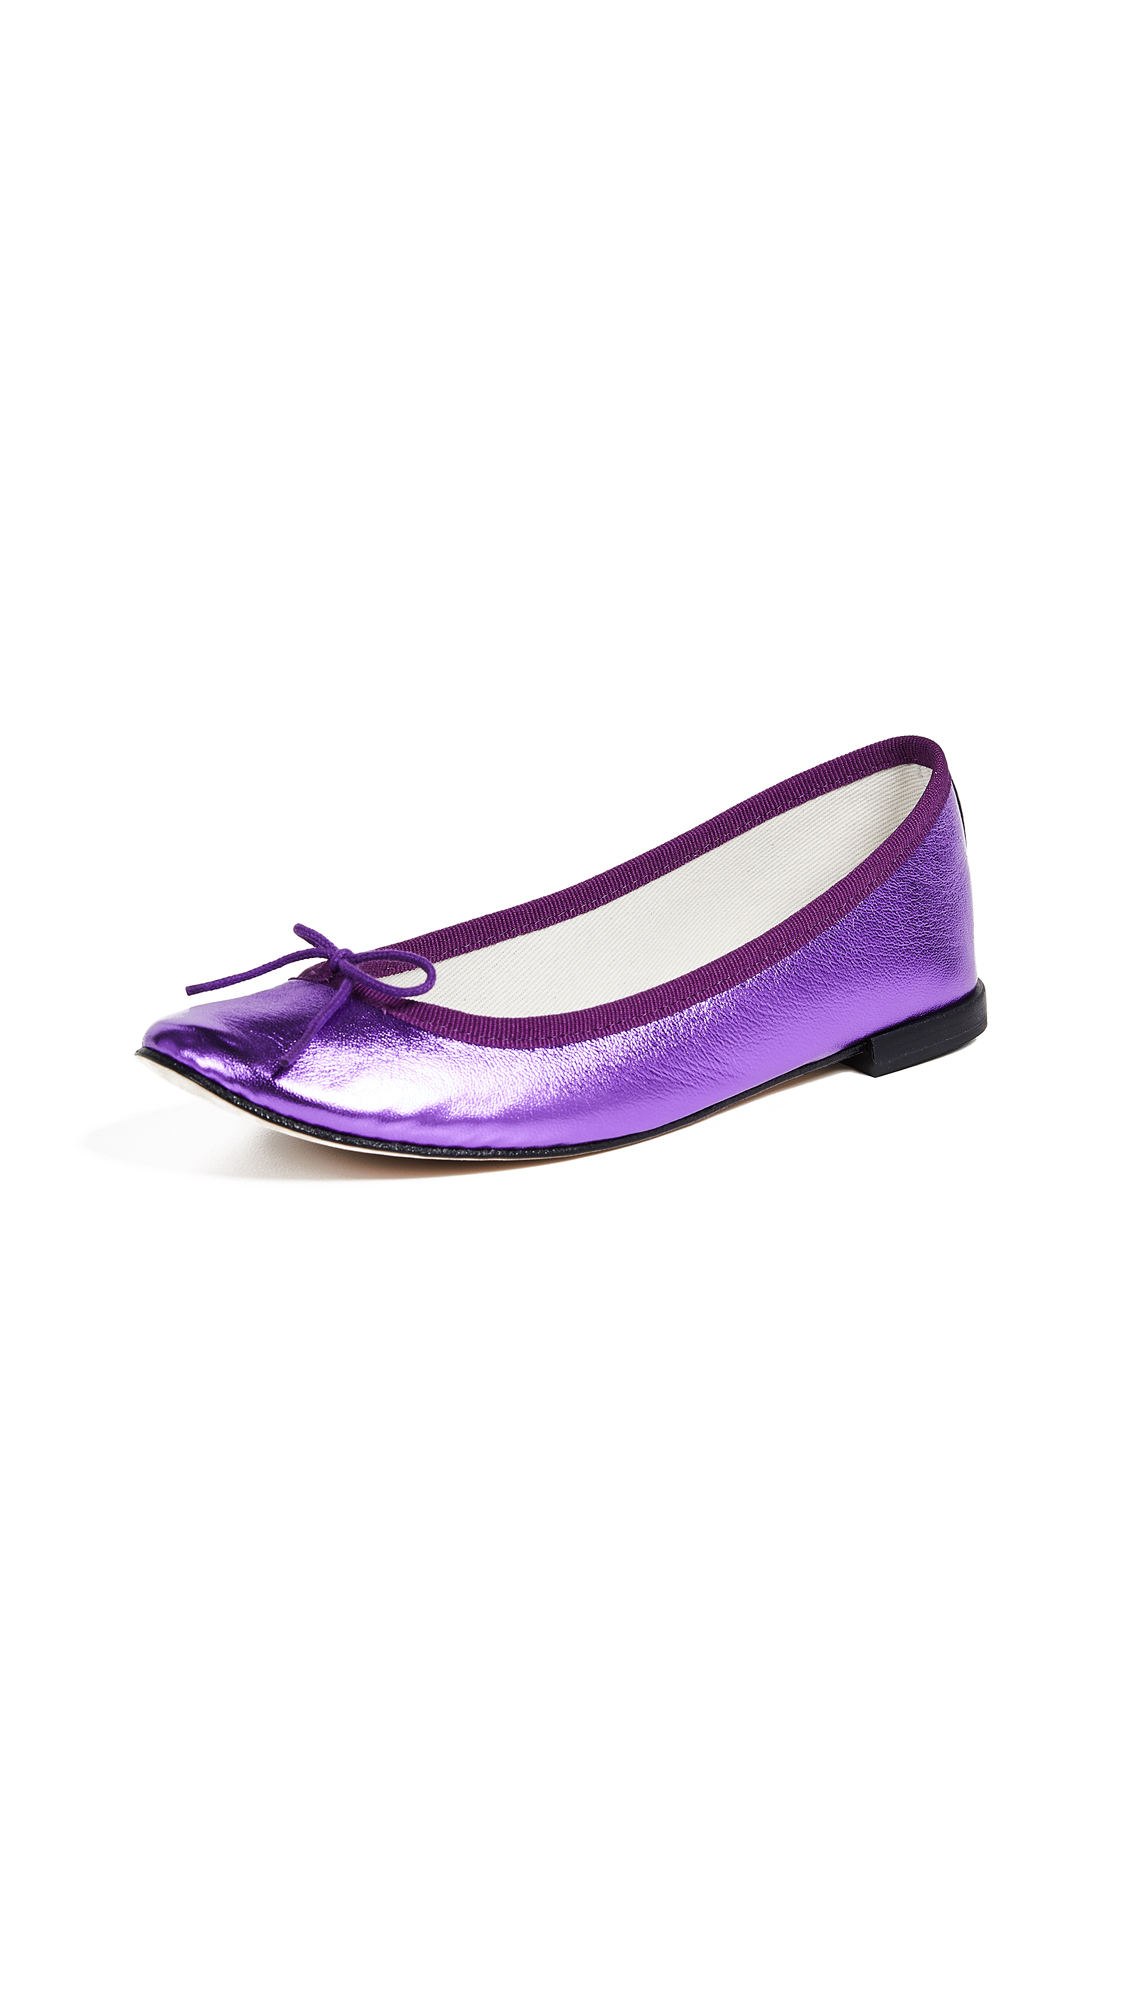 Repetto Cendrillon Metallic Ballerinas - Purple